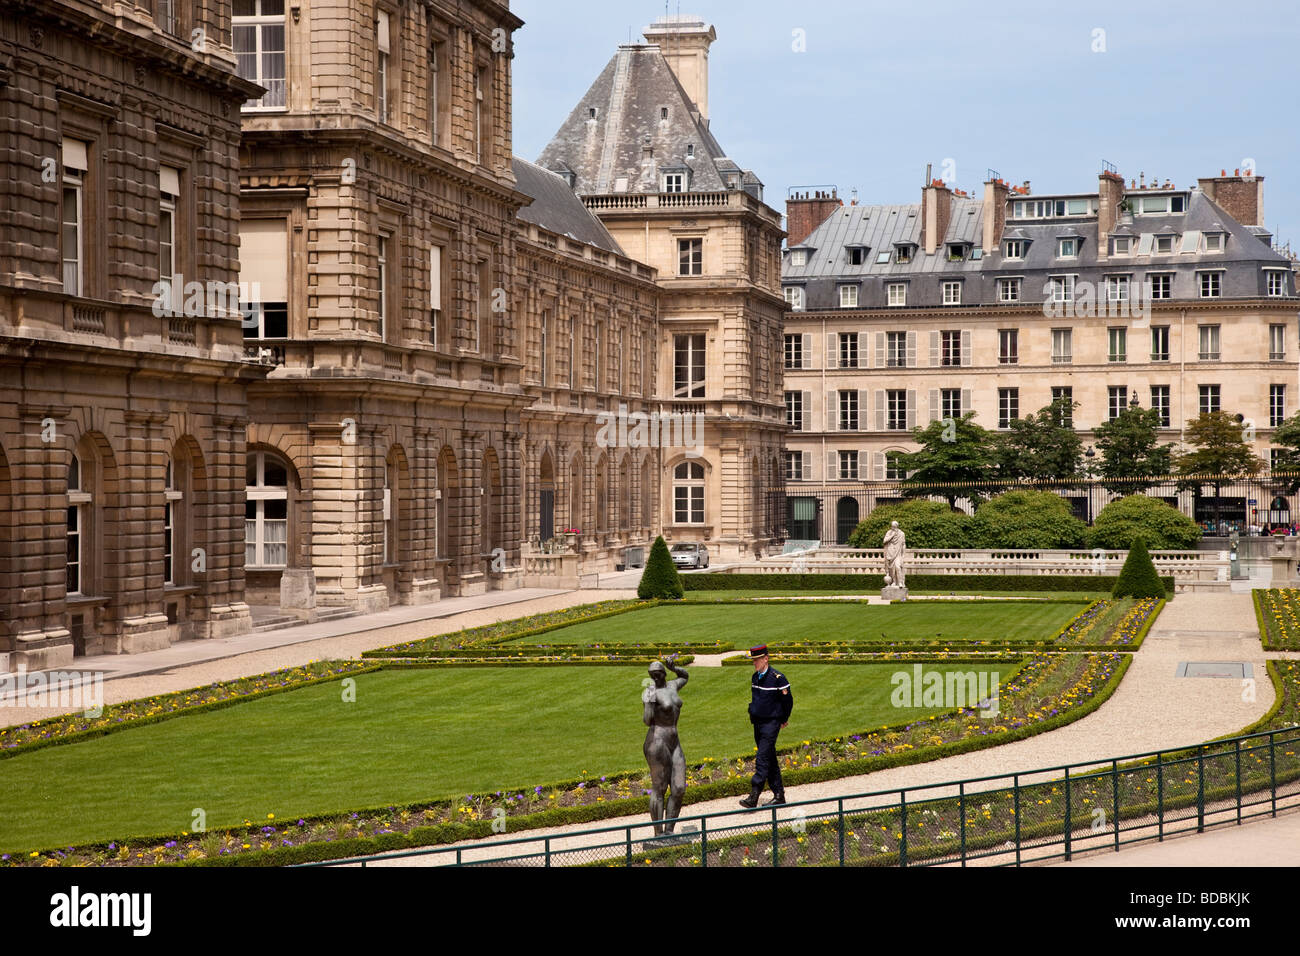 Jardin du Luxembourg, Paris France - Stock Image